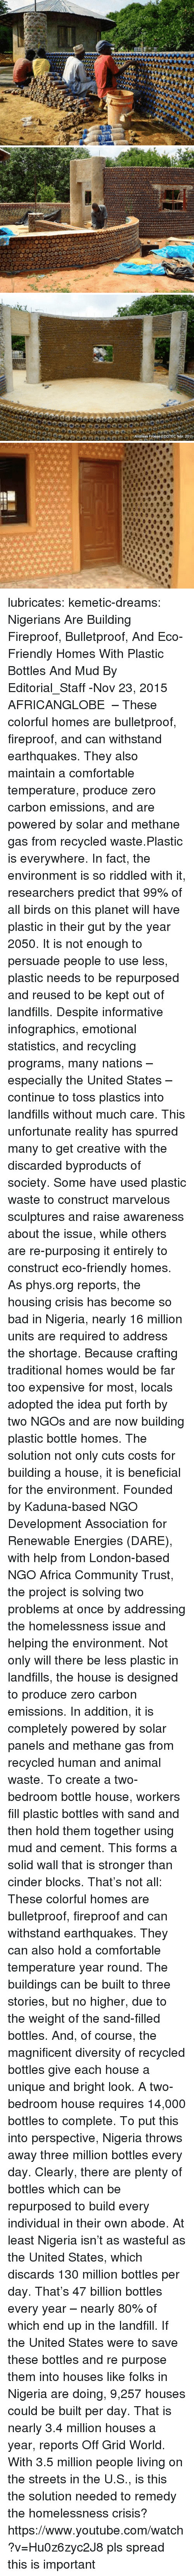 People Living: lubricates:  kemetic-dreams:   Nigerians Are Building Fireproof, Bulletproof, And Eco-Friendly Homes With Plastic Bottles And Mud By Editorial_Staff -Nov 23, 2015   AFRICANGLOBE  – These colorful homes are bulletproof, fireproof, and can withstand earthquakes. They also maintain a comfortable temperature, produce zero carbon emissions, and are powered by solar and methane gas from recycled waste.Plastic is everywhere. In fact, the environment is so riddled with it, researchers predict that 99% of all birds on this planet will have plastic in their gut by the year 2050. It is not enough to persuade people to use less, plastic needs to be repurposed and reused to be kept out of landfills. Despite informative infographics, emotional statistics, and recycling programs, many nations – especially the United States – continue to toss plastics into landfills without much care. This unfortunate reality has spurred many to get creative with the discarded byproducts of society. Some have used plastic waste to construct marvelous sculptures and raise awareness about the issue, while others are re-purposing it entirely to construct eco-friendly homes. As phys.org reports, the housing crisis has become so bad in Nigeria, nearly 16 million units are required to address the shortage. Because crafting traditional homes would be far too expensive for most, locals adopted the idea put forth by two NGOs and are now building plastic bottle homes. The solution not only cuts costs for building a house, it is beneficial for the environment. Founded by Kaduna-based NGO Development Association for Renewable Energies (DARE), with help from London-based NGO Africa Community Trust, the project is solving two problems at once by addressing the homelessness issue and helping the environment. Not only will there be less plastic in landfills, the house is designed to produce zero carbon emissions. In addition, it is completely powered by solar panels and methane gas from recycled human and animal waste. To create a two-bedroom bottle house, workers fill plastic bottles with sand and then hold them together using mud and cement. This forms a solid wall that is stronger than cinder blocks. That's not all: These colorful homes are bulletproof, fireproof and can withstand earthquakes. They can also hold a comfortable temperature year round. The buildings can be built to three stories, but no higher, due to the weight of the sand-filled bottles. And, of course, the magnificent diversity of recycled bottles give each house a unique and bright look. A two-bedroom house requires 14,000 bottles to complete. To put this into perspective, Nigeria throws away three million bottles every day. Clearly, there are plenty of bottles which can be repurposed to build every individual in their own abode. At least Nigeria isn't as wasteful as the United States, which discards 130 million bottles per day. That's 47 billion bottles every year – nearly 80% of which end up in the landfill.  If the United States were to save these bottles and re purpose them into houses like folks in Nigeria are doing, 9,257 houses could be built per day. That is nearly 3.4 million houses a year, reports Off Grid World. With 3.5 million people living on the streets in the U.S., is this the solution needed to remedy the homelessness crisis? https://www.youtube.com/watch?v=Hu0z6zyc2J8  pls spread this is important